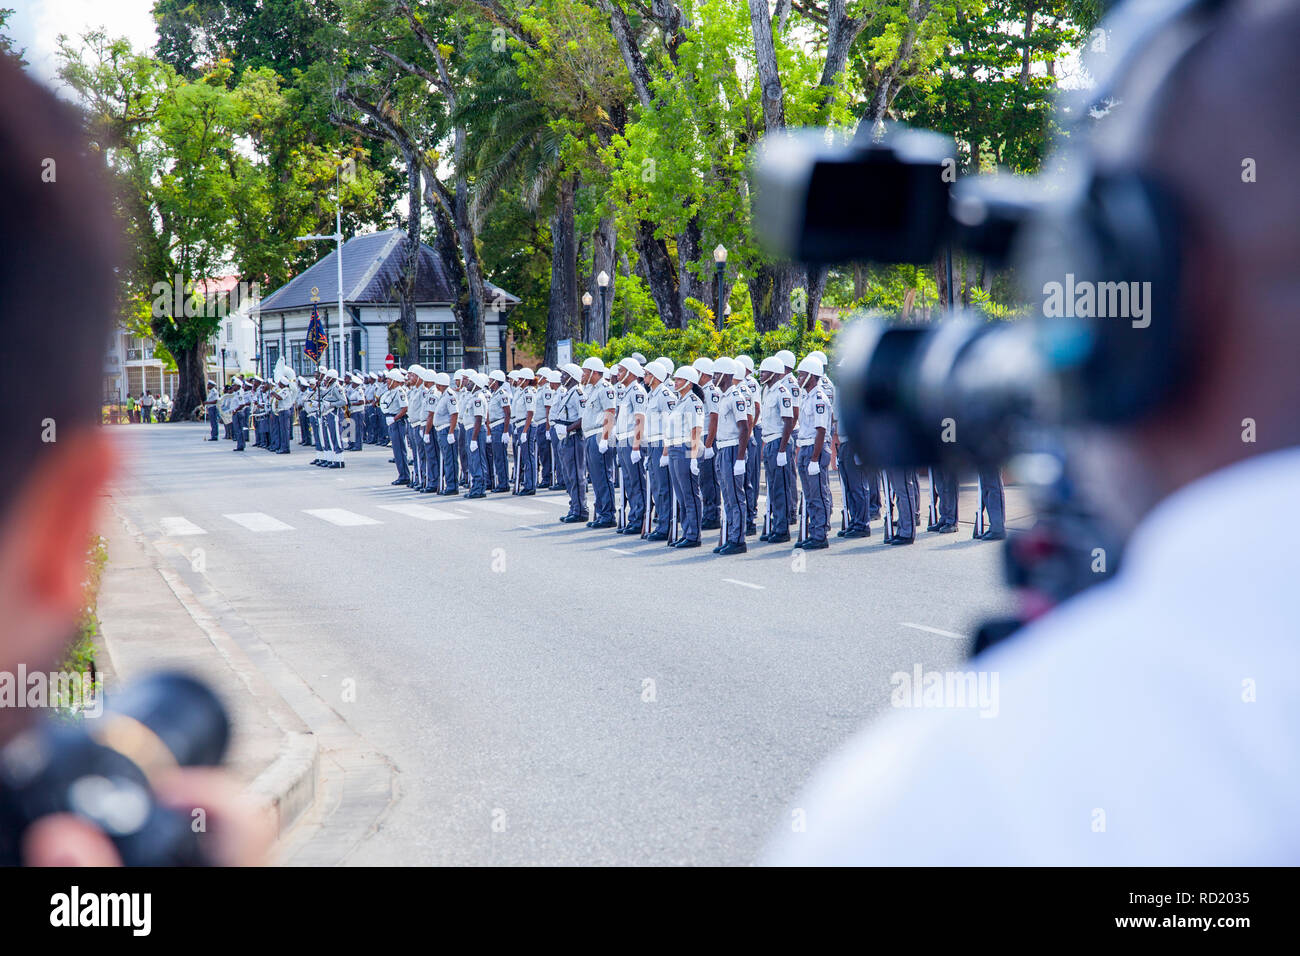 PARAMARIBO, SURINAME - OCTOBER 1, 2018: Press and honor guard awaiting president Bouterse to preside a national ceremony - Stock Image